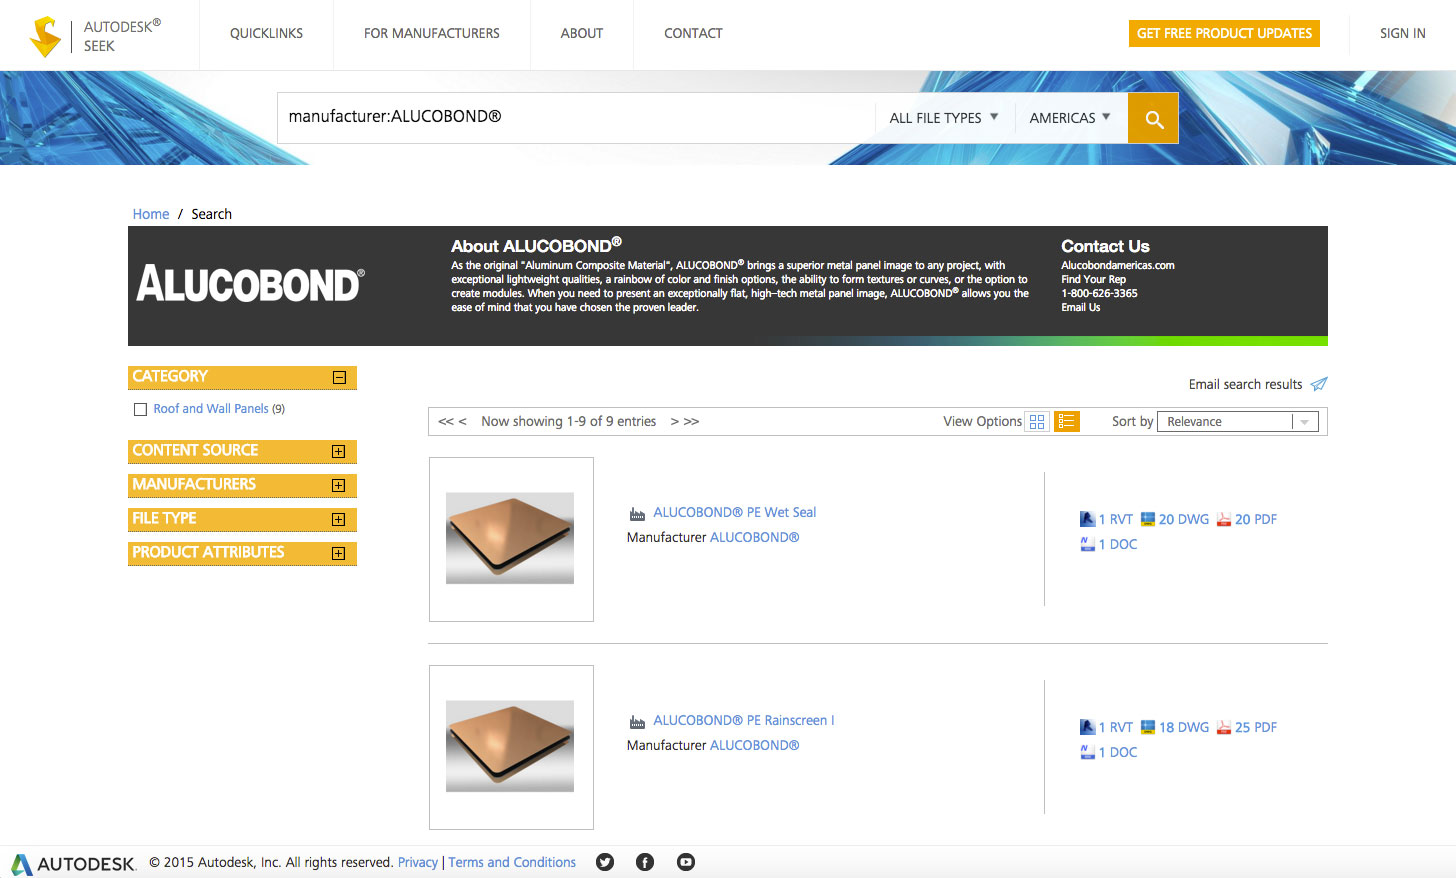 Alucobond Aluminum Composite Material 3D BIM Files Now Available On